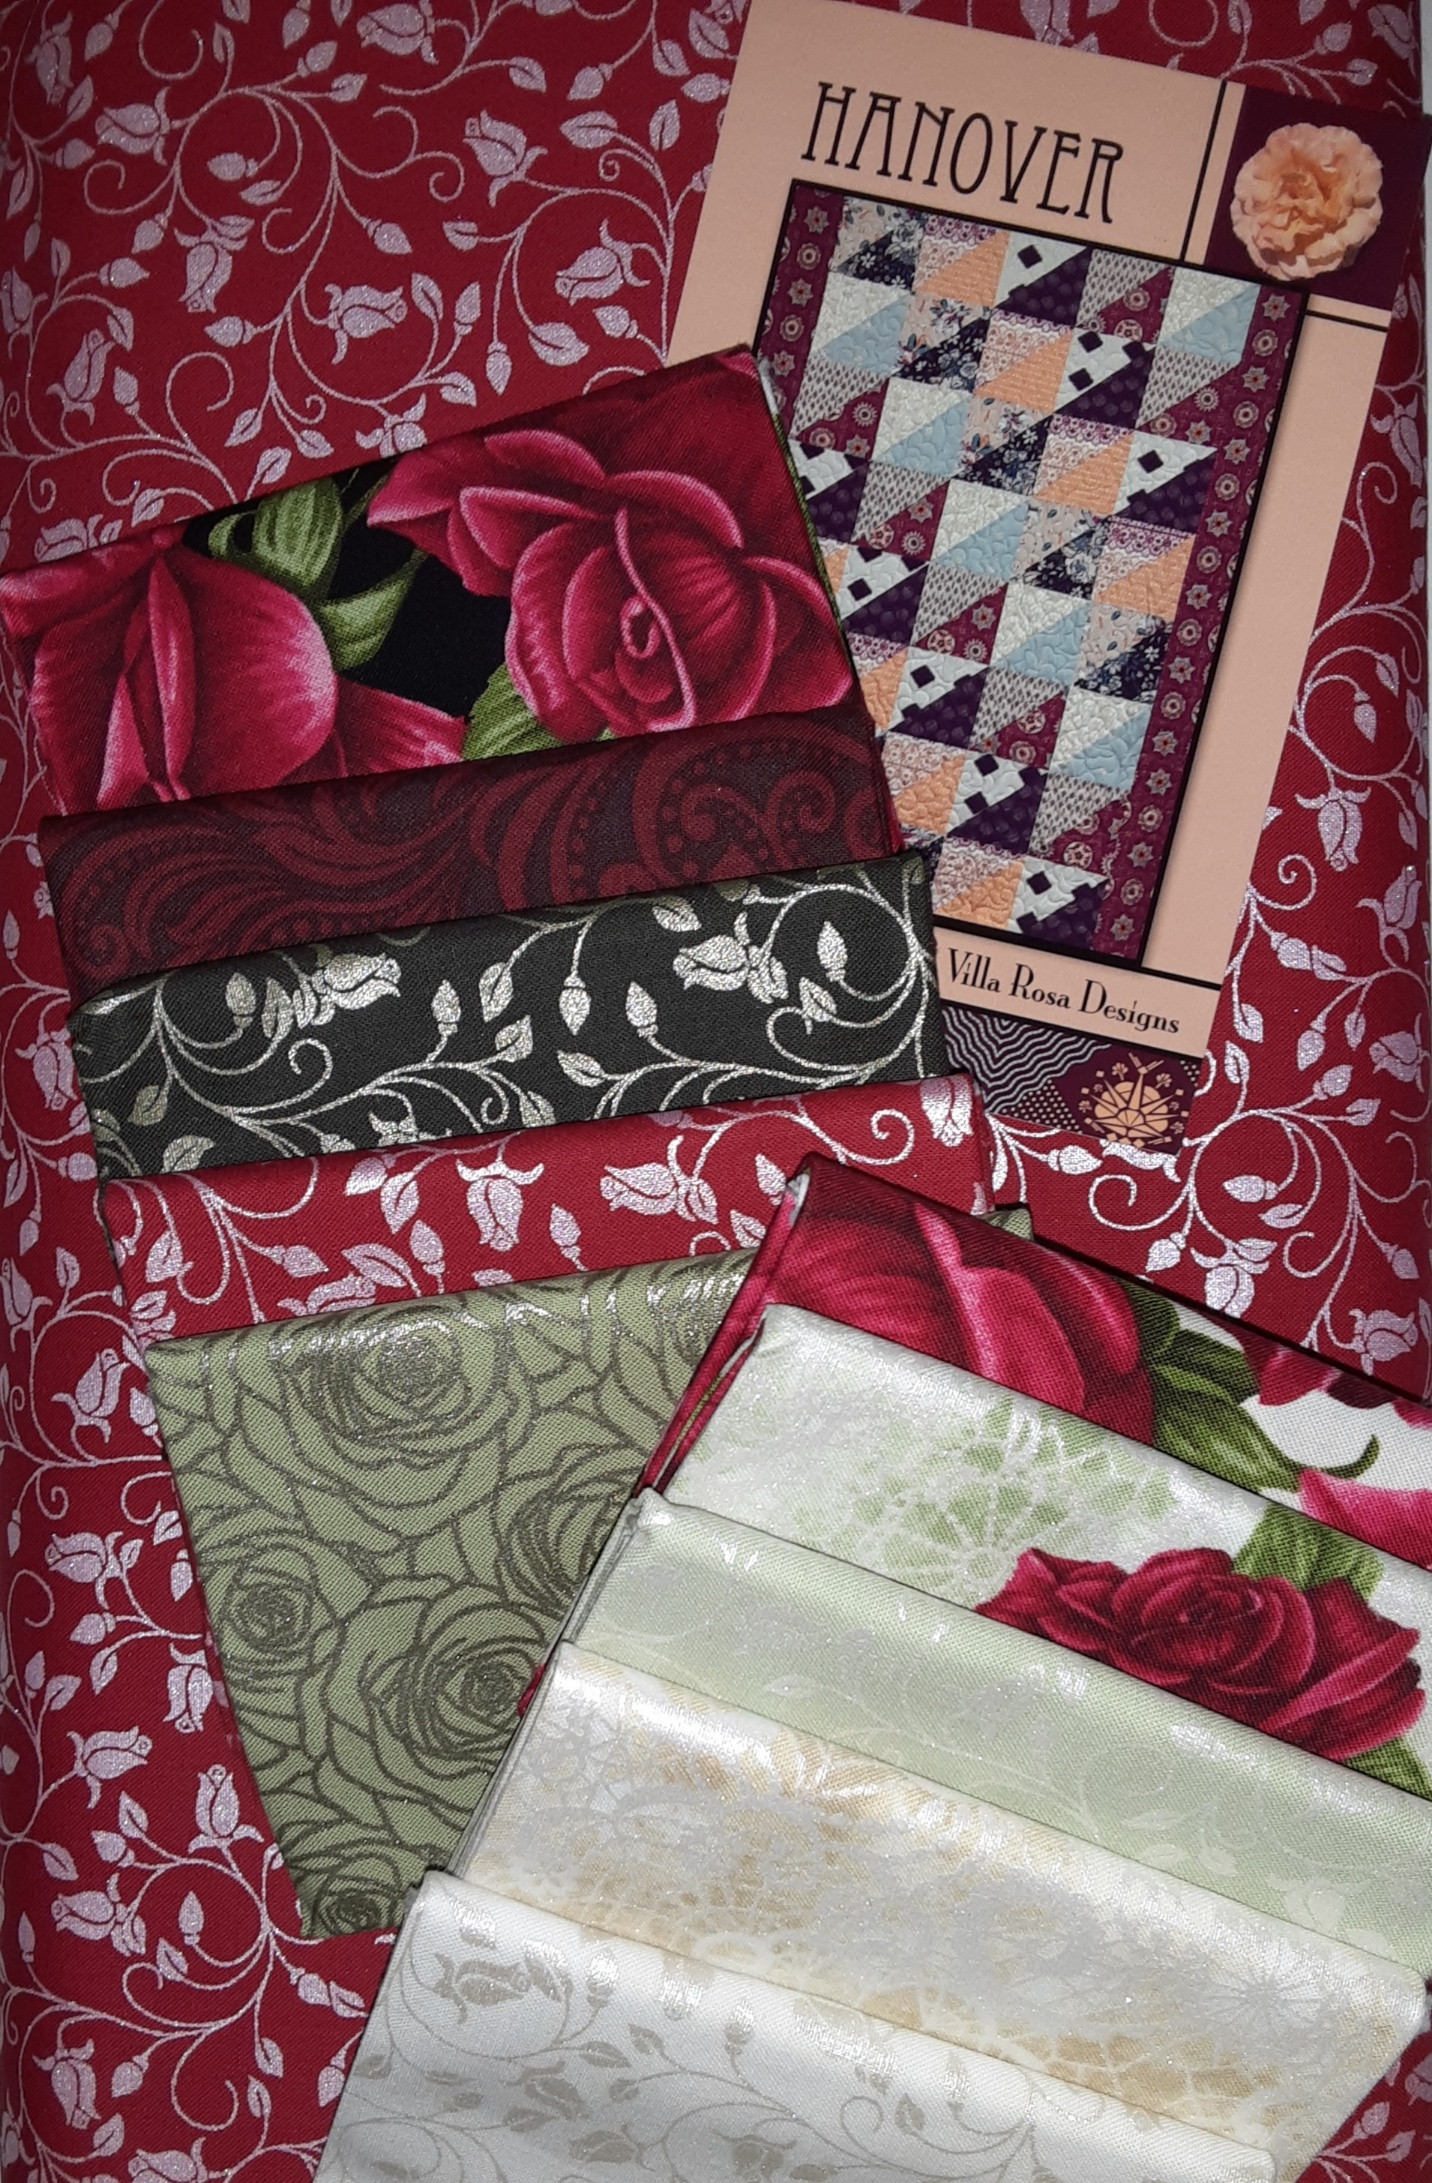 Hanover Quilt Kit with Festival of Roses